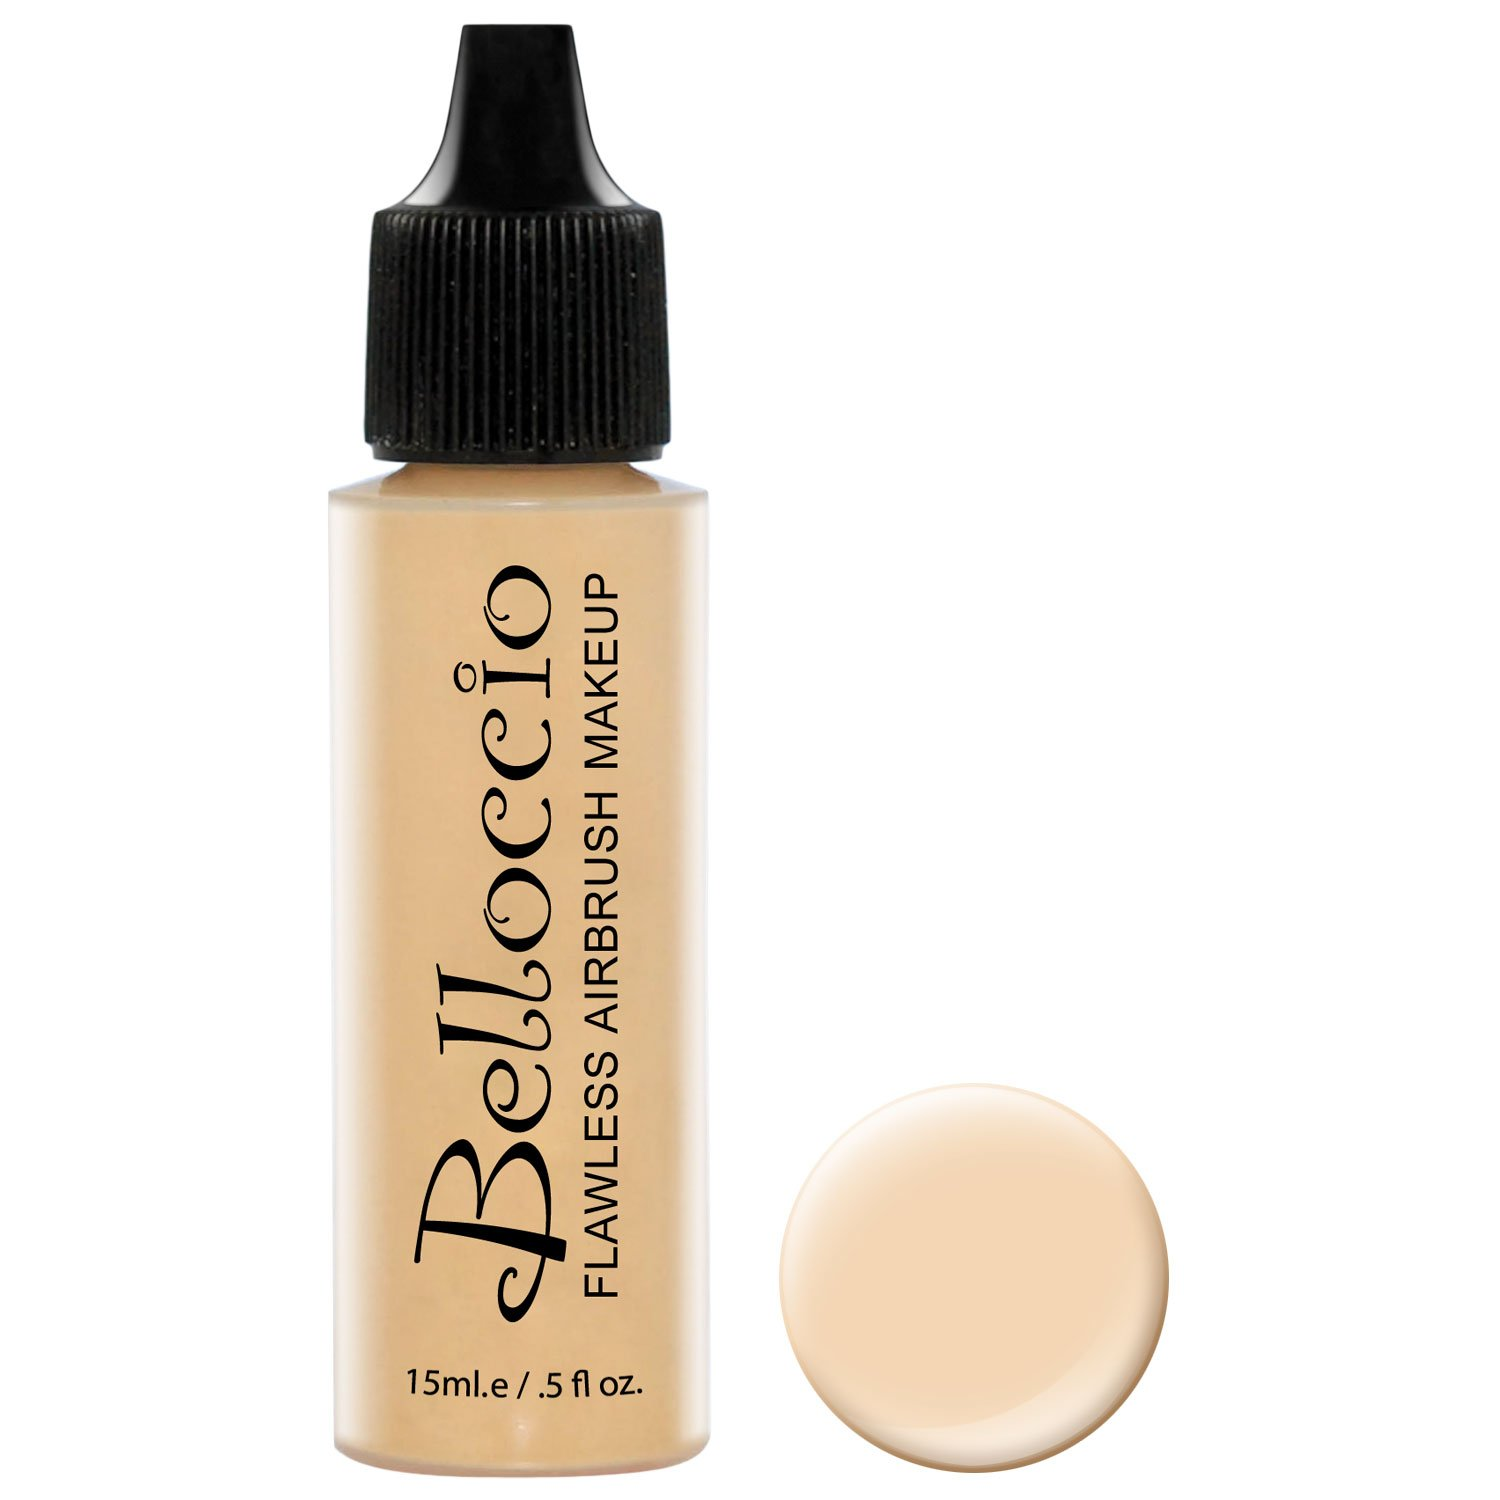 Belloccio's Professional Cosmetic Airbrush Makeup Foundation 1/2oz Bottle: Buff- Light with Golden Undertones